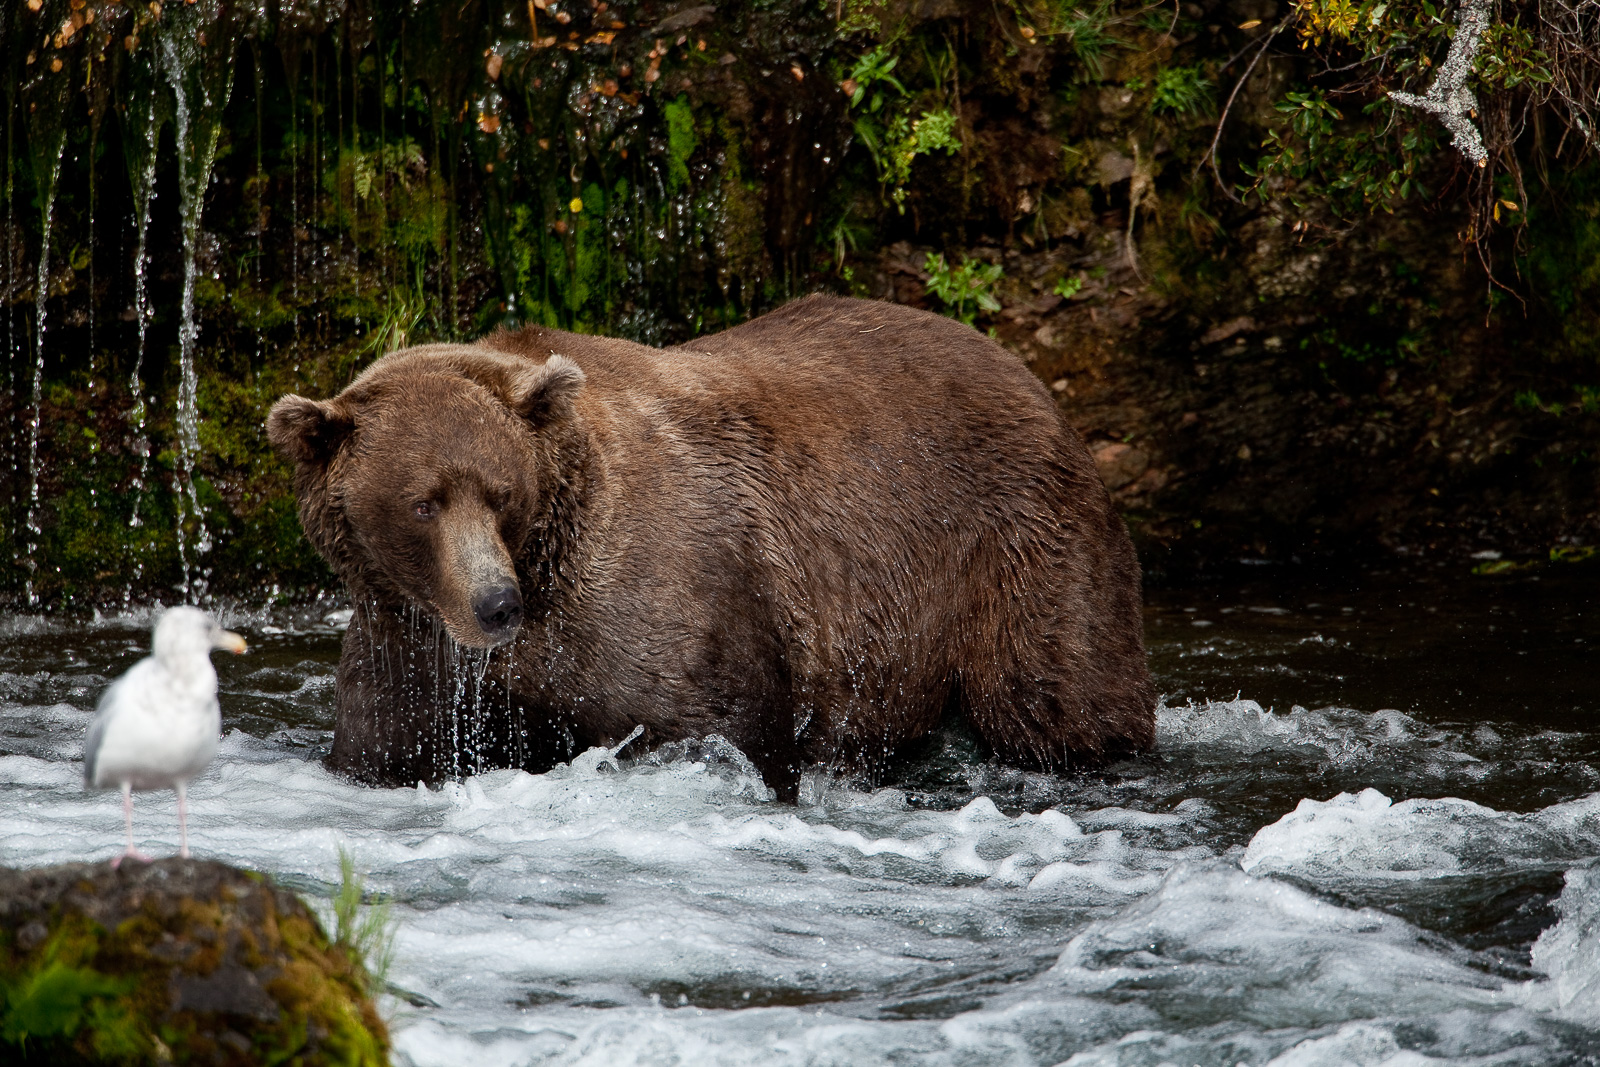 Wilderness Spa,Fall,Fishing,Grizzly,Wildlife,Katmai National Park, Alaska,Water, bear, photo